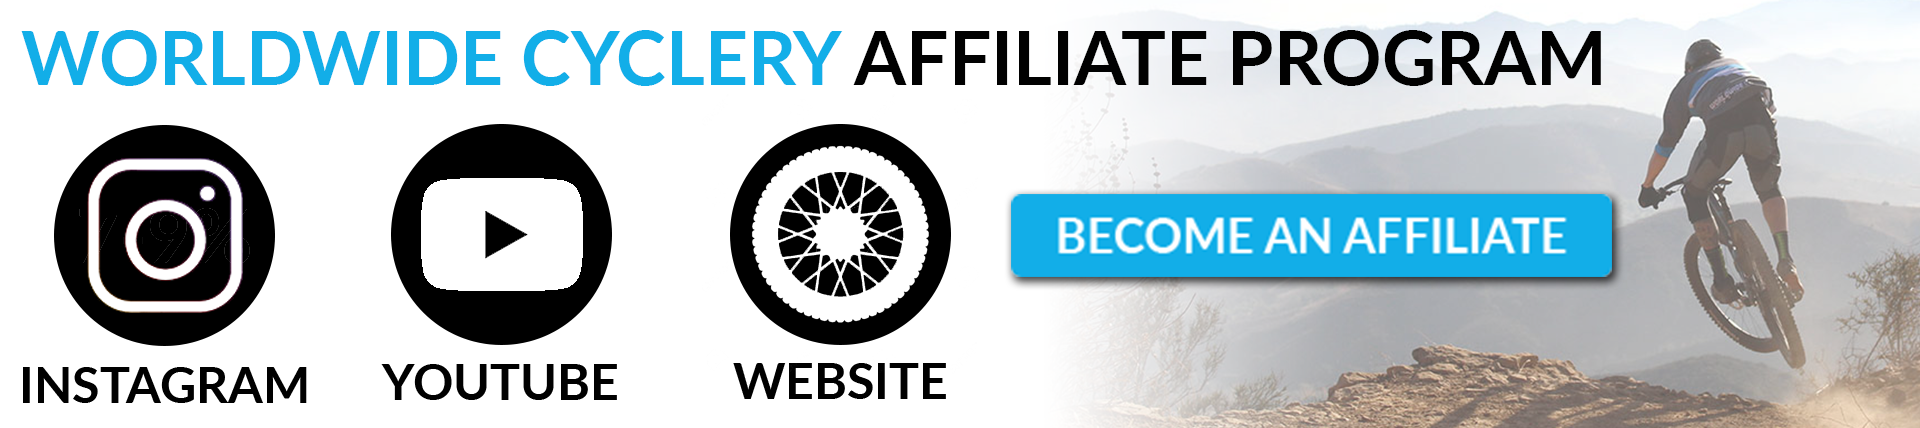 Worldwide Cyclery Affiliate Program